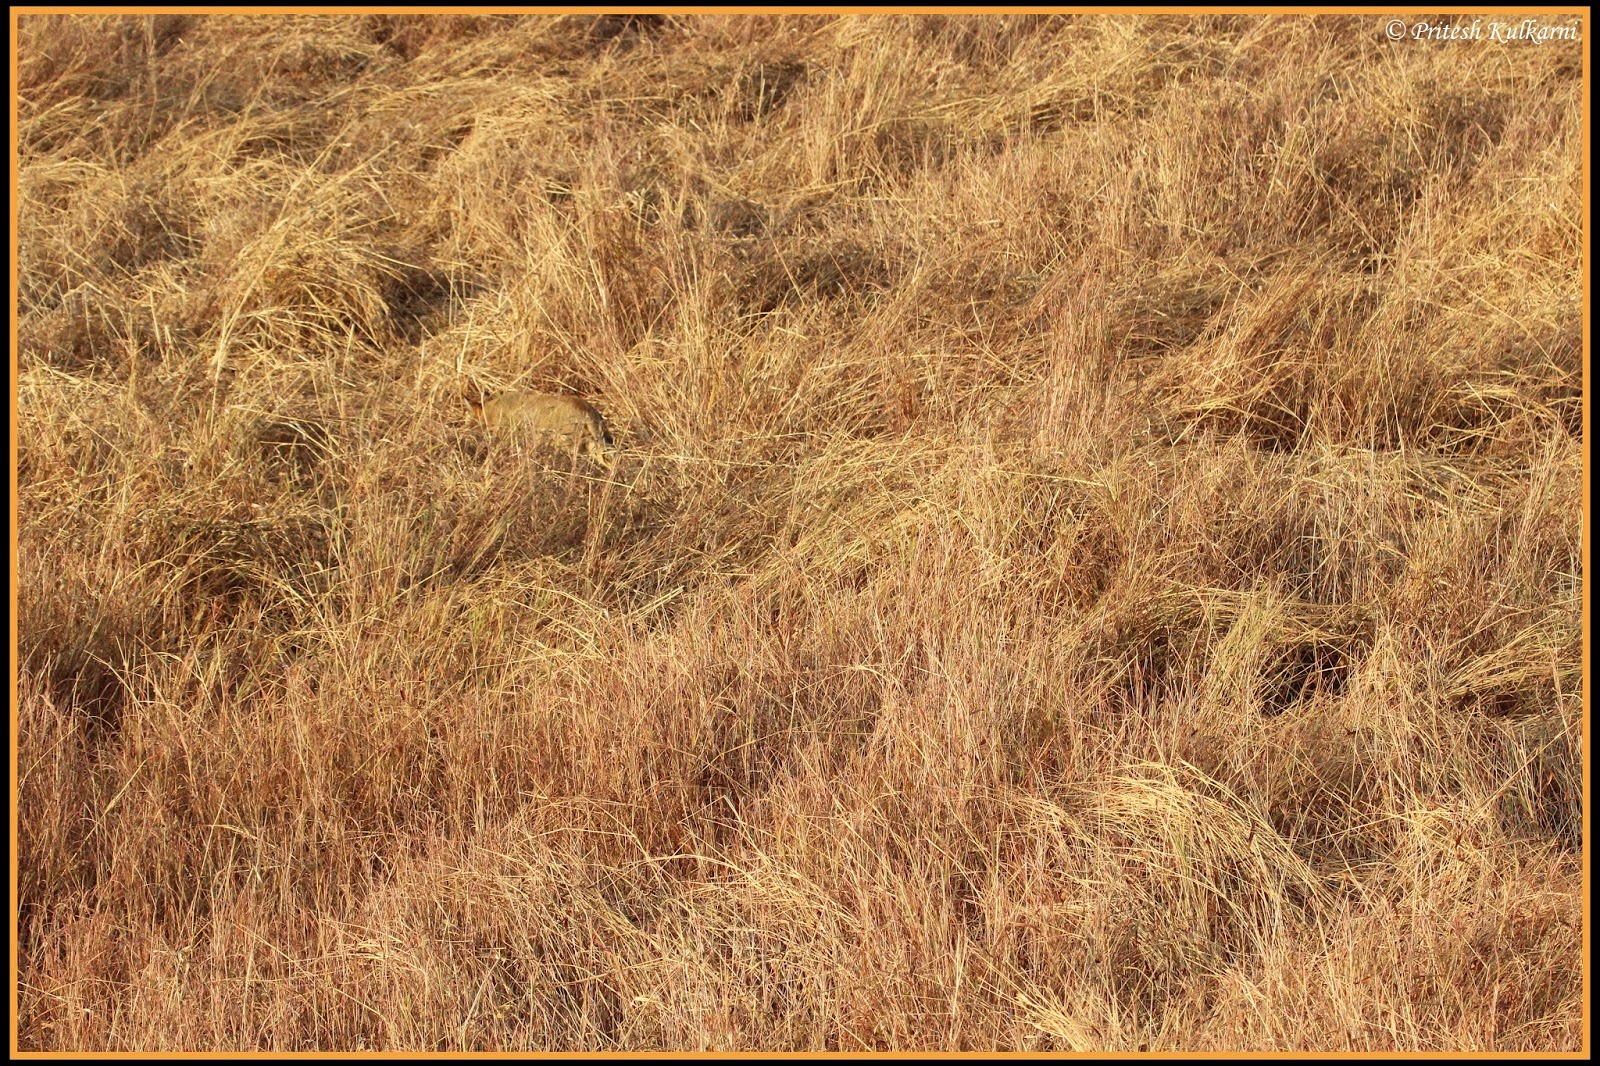 Search Wild cat in this picture in 5 seconds... Perfect example of Camouflage